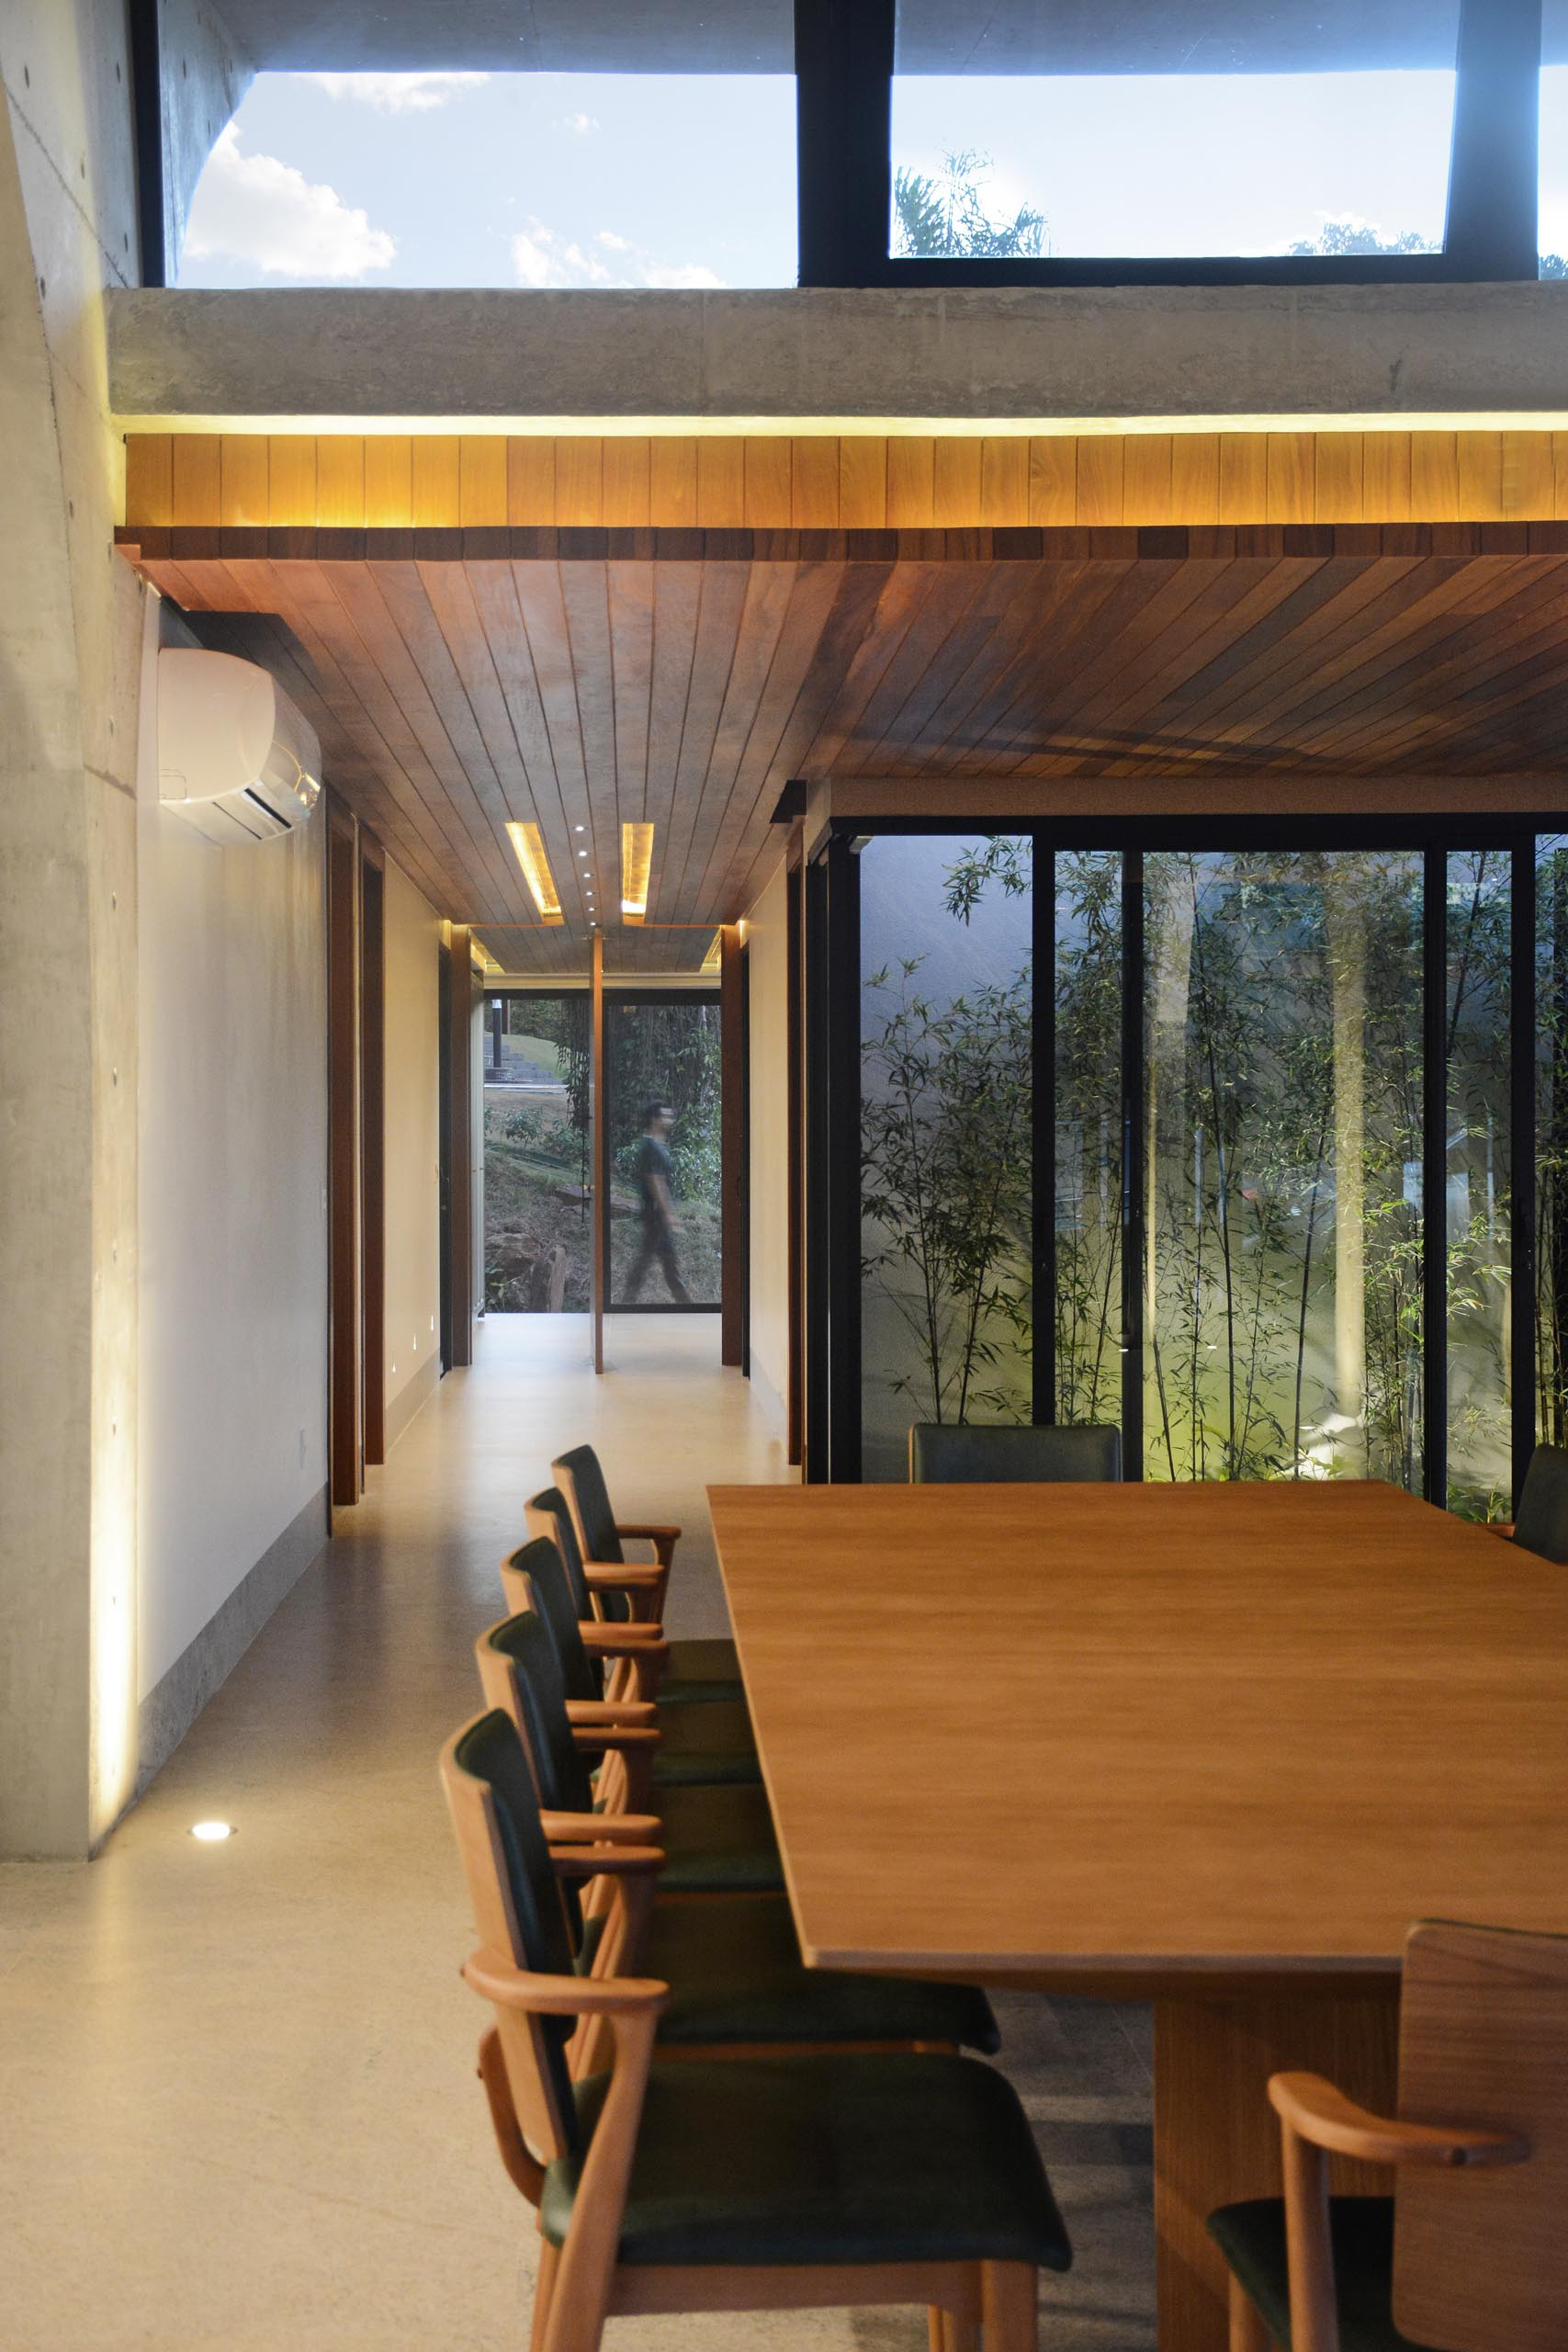 A pivoting front door welcomes people to the home, while a wood ceiling with lighting adds a sense of warmth to the interior.